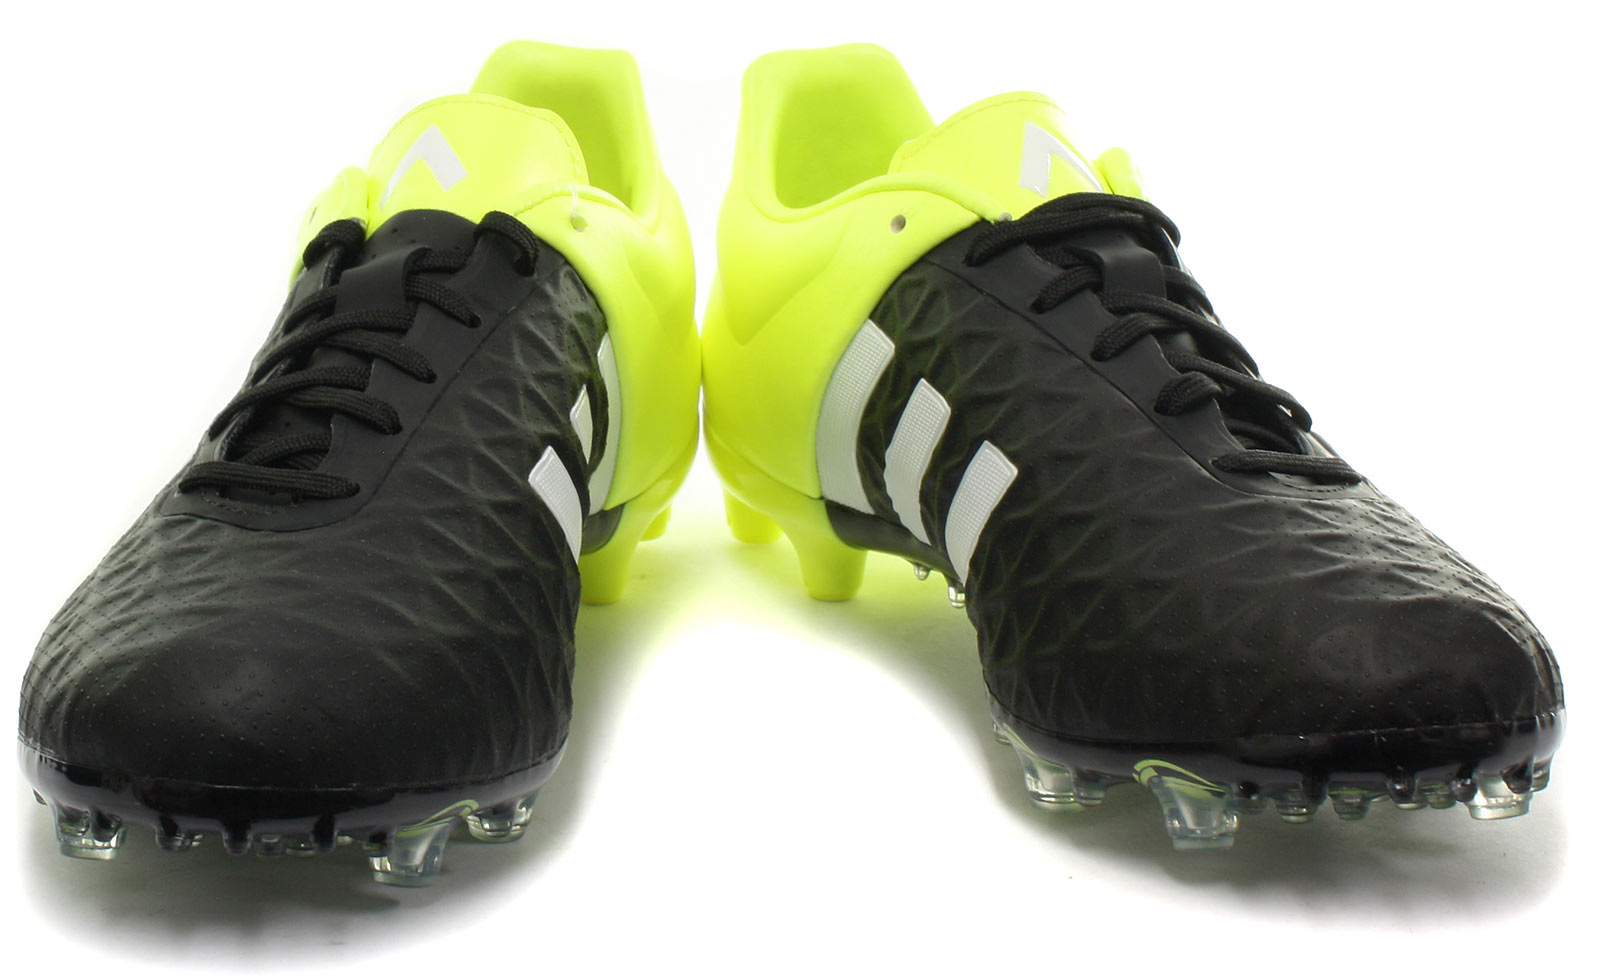 f8c839595 adidas Ace 15.2 FG AG Blk Yellow Mens Football Boots   Soccer Cleats ALL  SIZES 2 2 of 6 ...